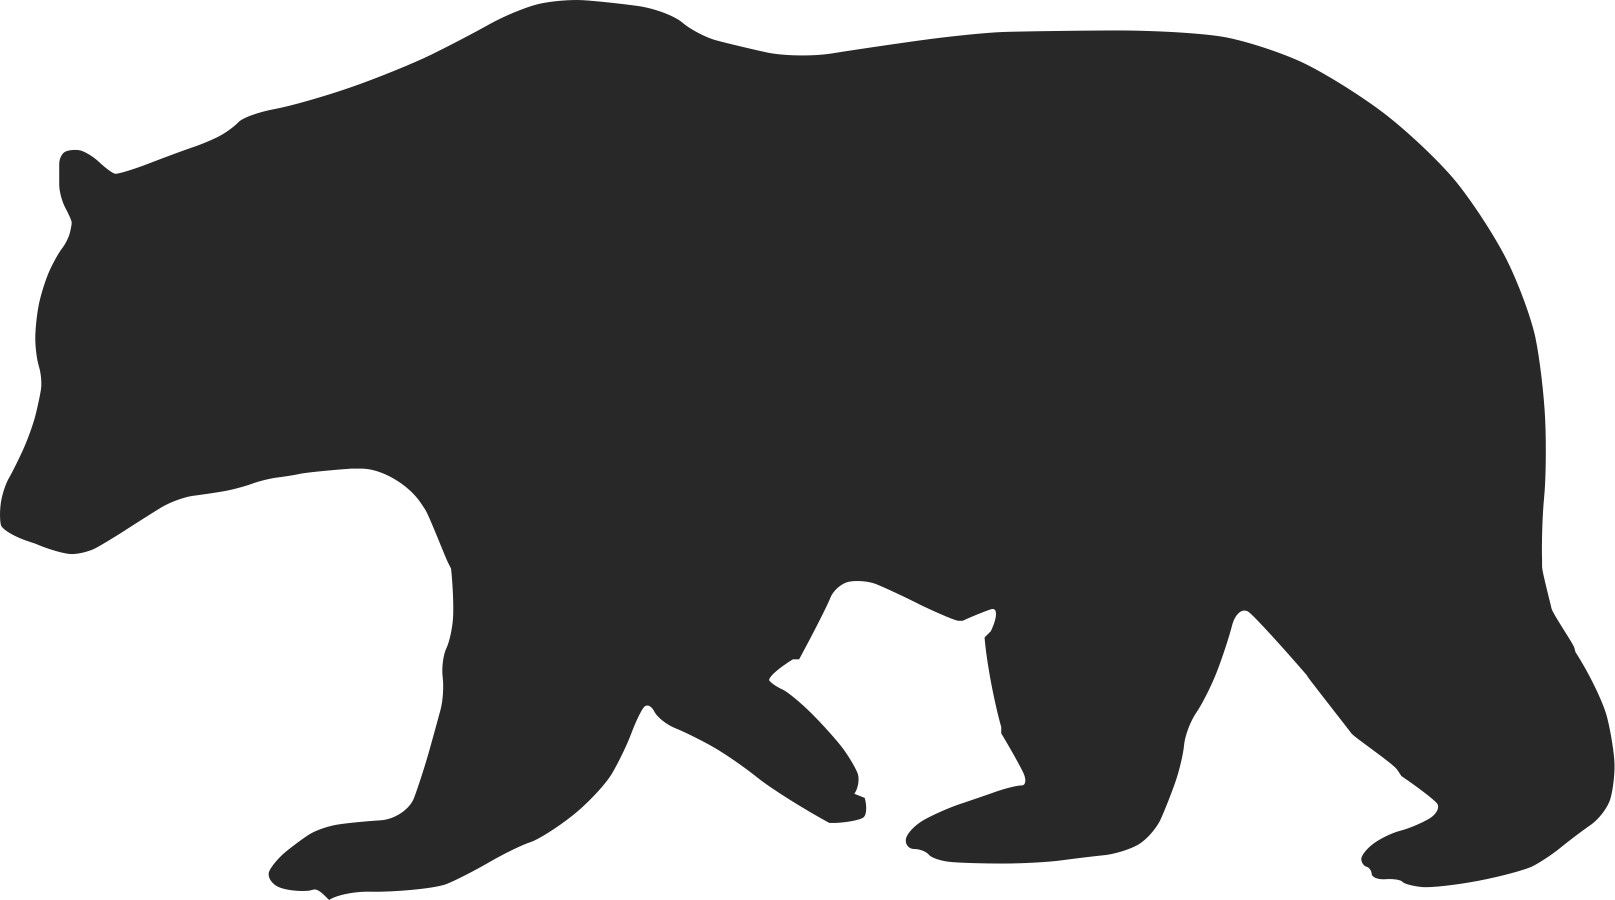 Bear clip art silhouette. Redesign california s flag